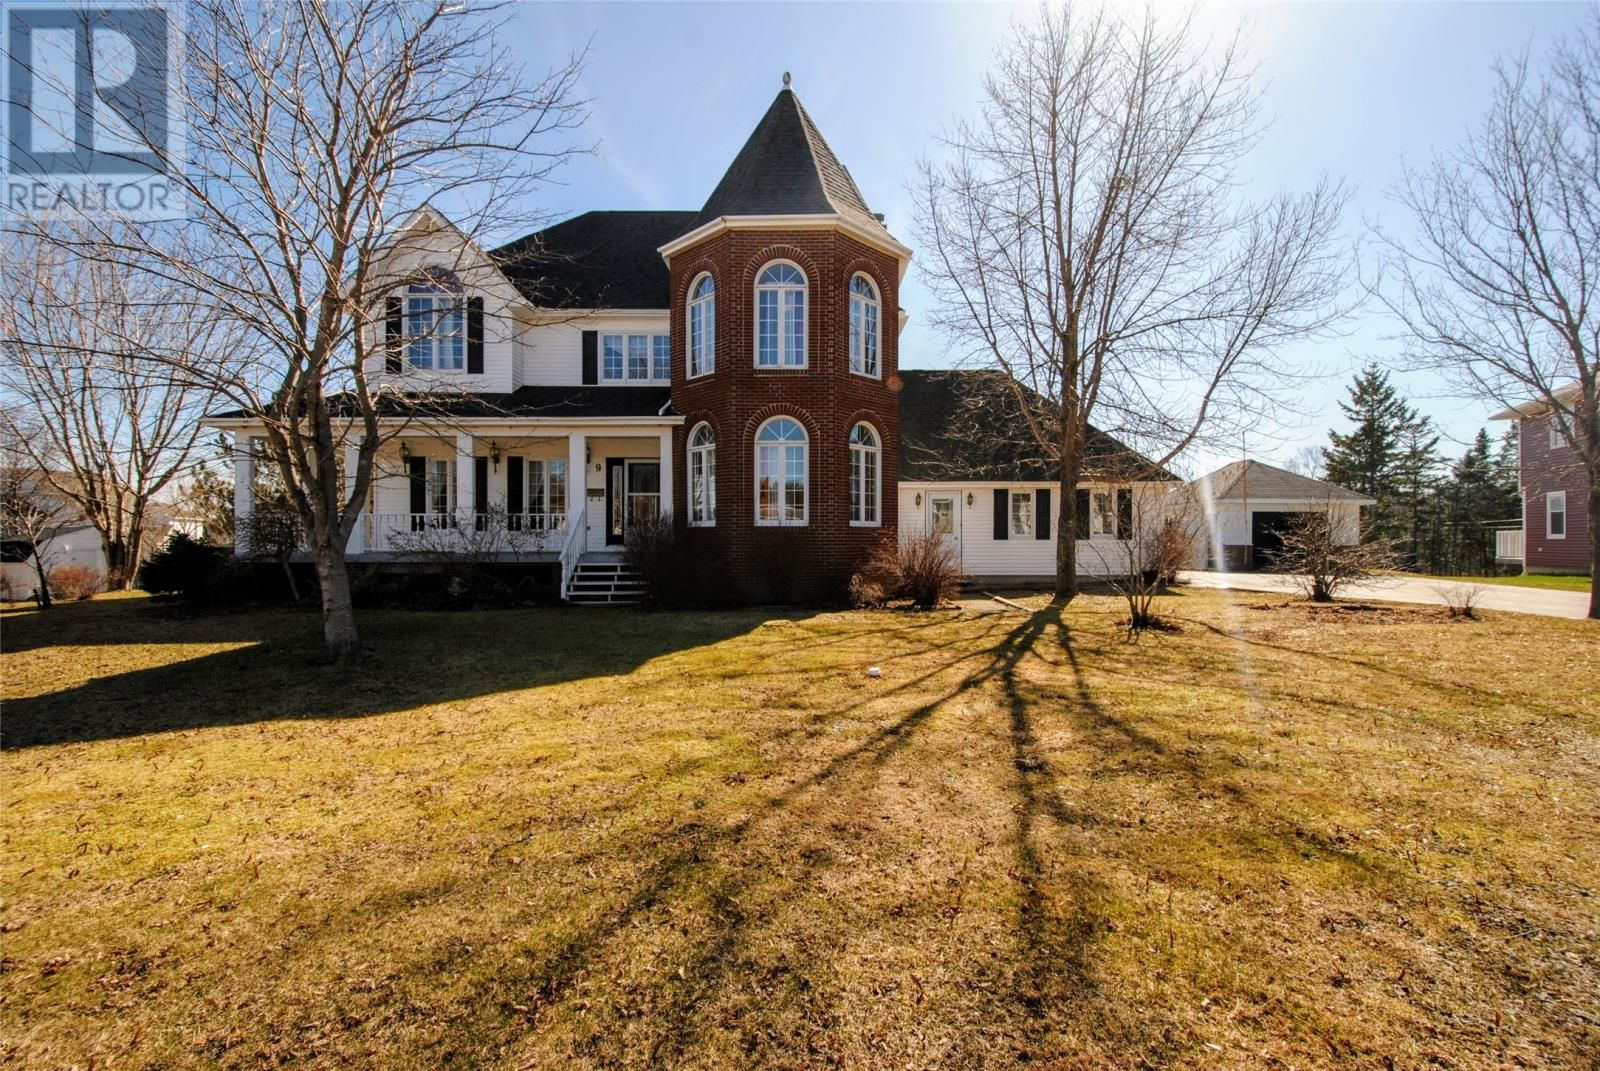 Main Photo: 9 Stacey Crescent in Stephenville: House for sale : MLS®# 1229155